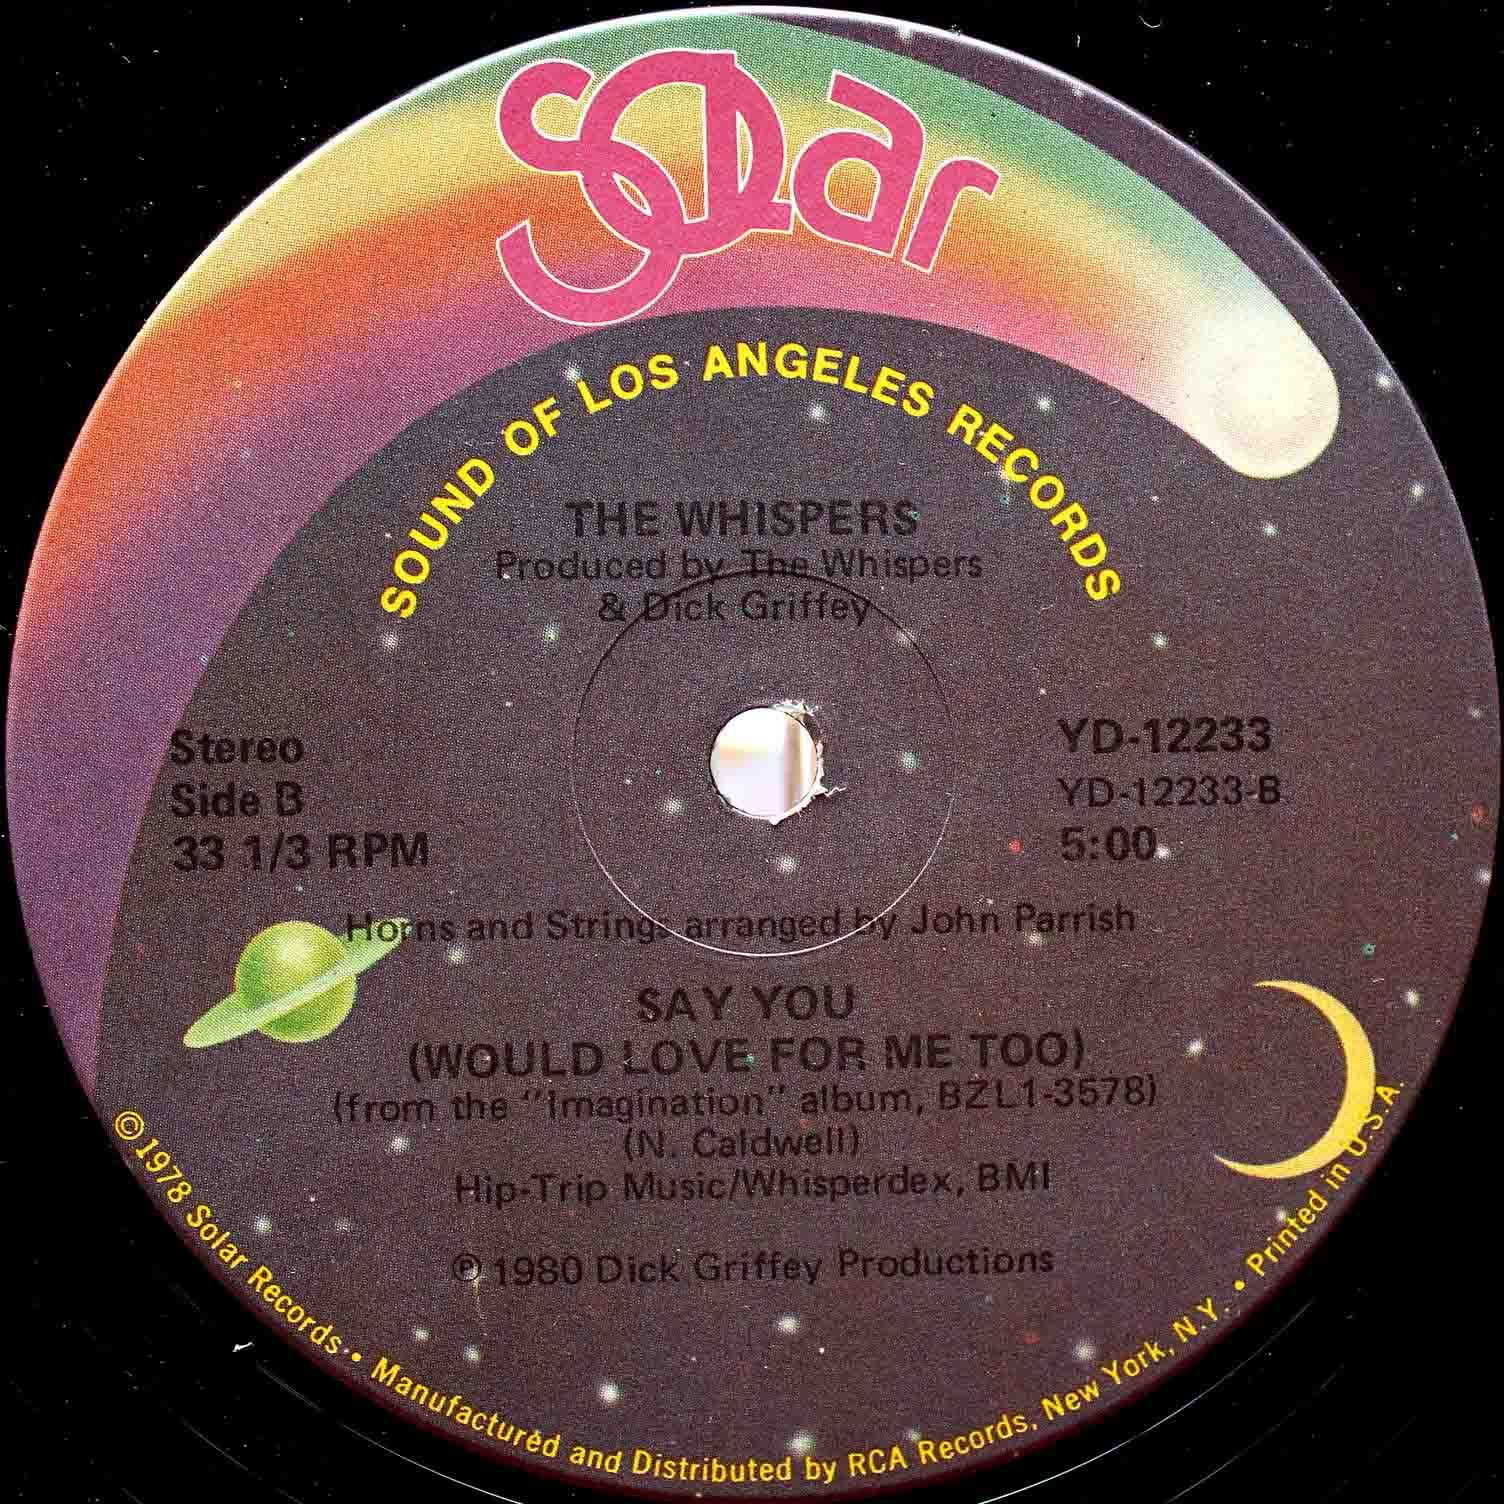 The Whispers make your better 03